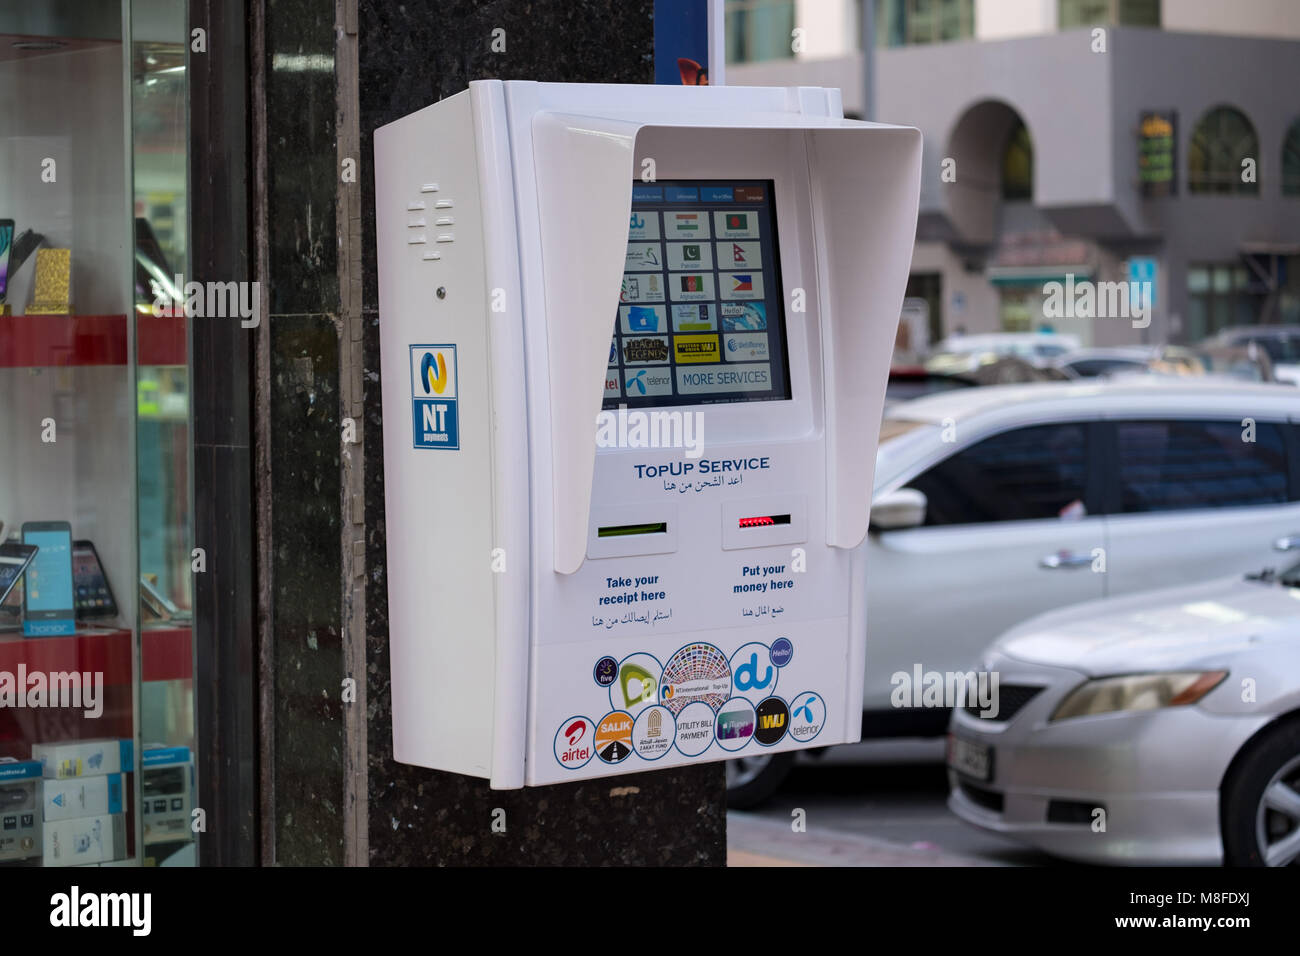 Du telcom and Etislat telcom outdoor Top-up kiosk /machine - Stock Image